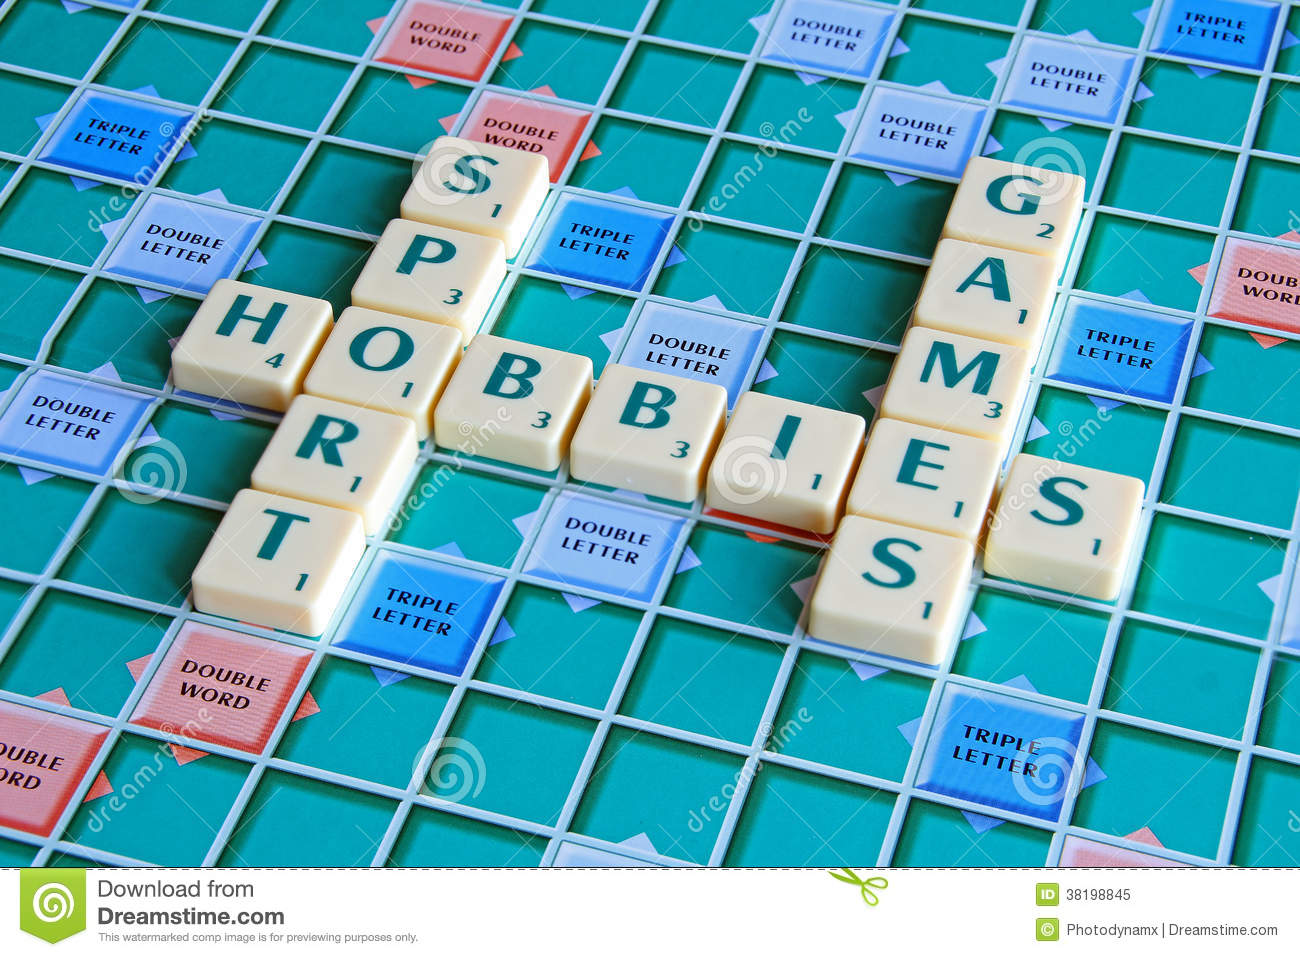 scrabble board games hobbies